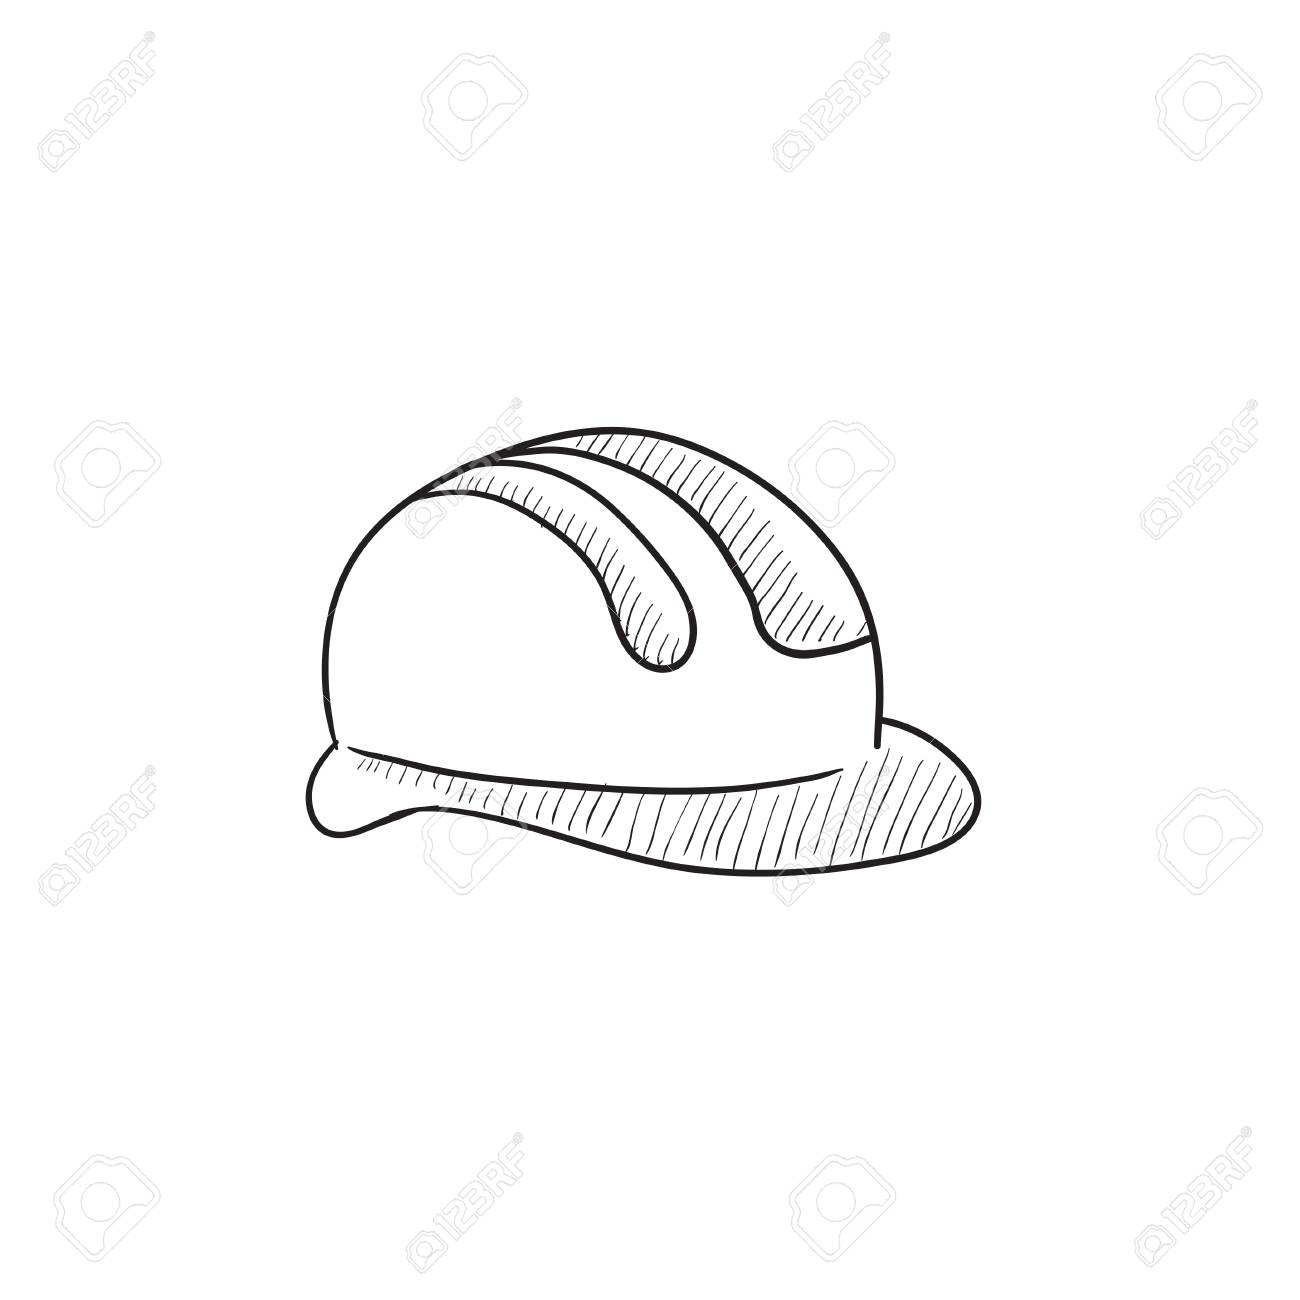 1300x1300 Hard Hat Vector Sketch Icon Isolated On Background. Hand Drawn